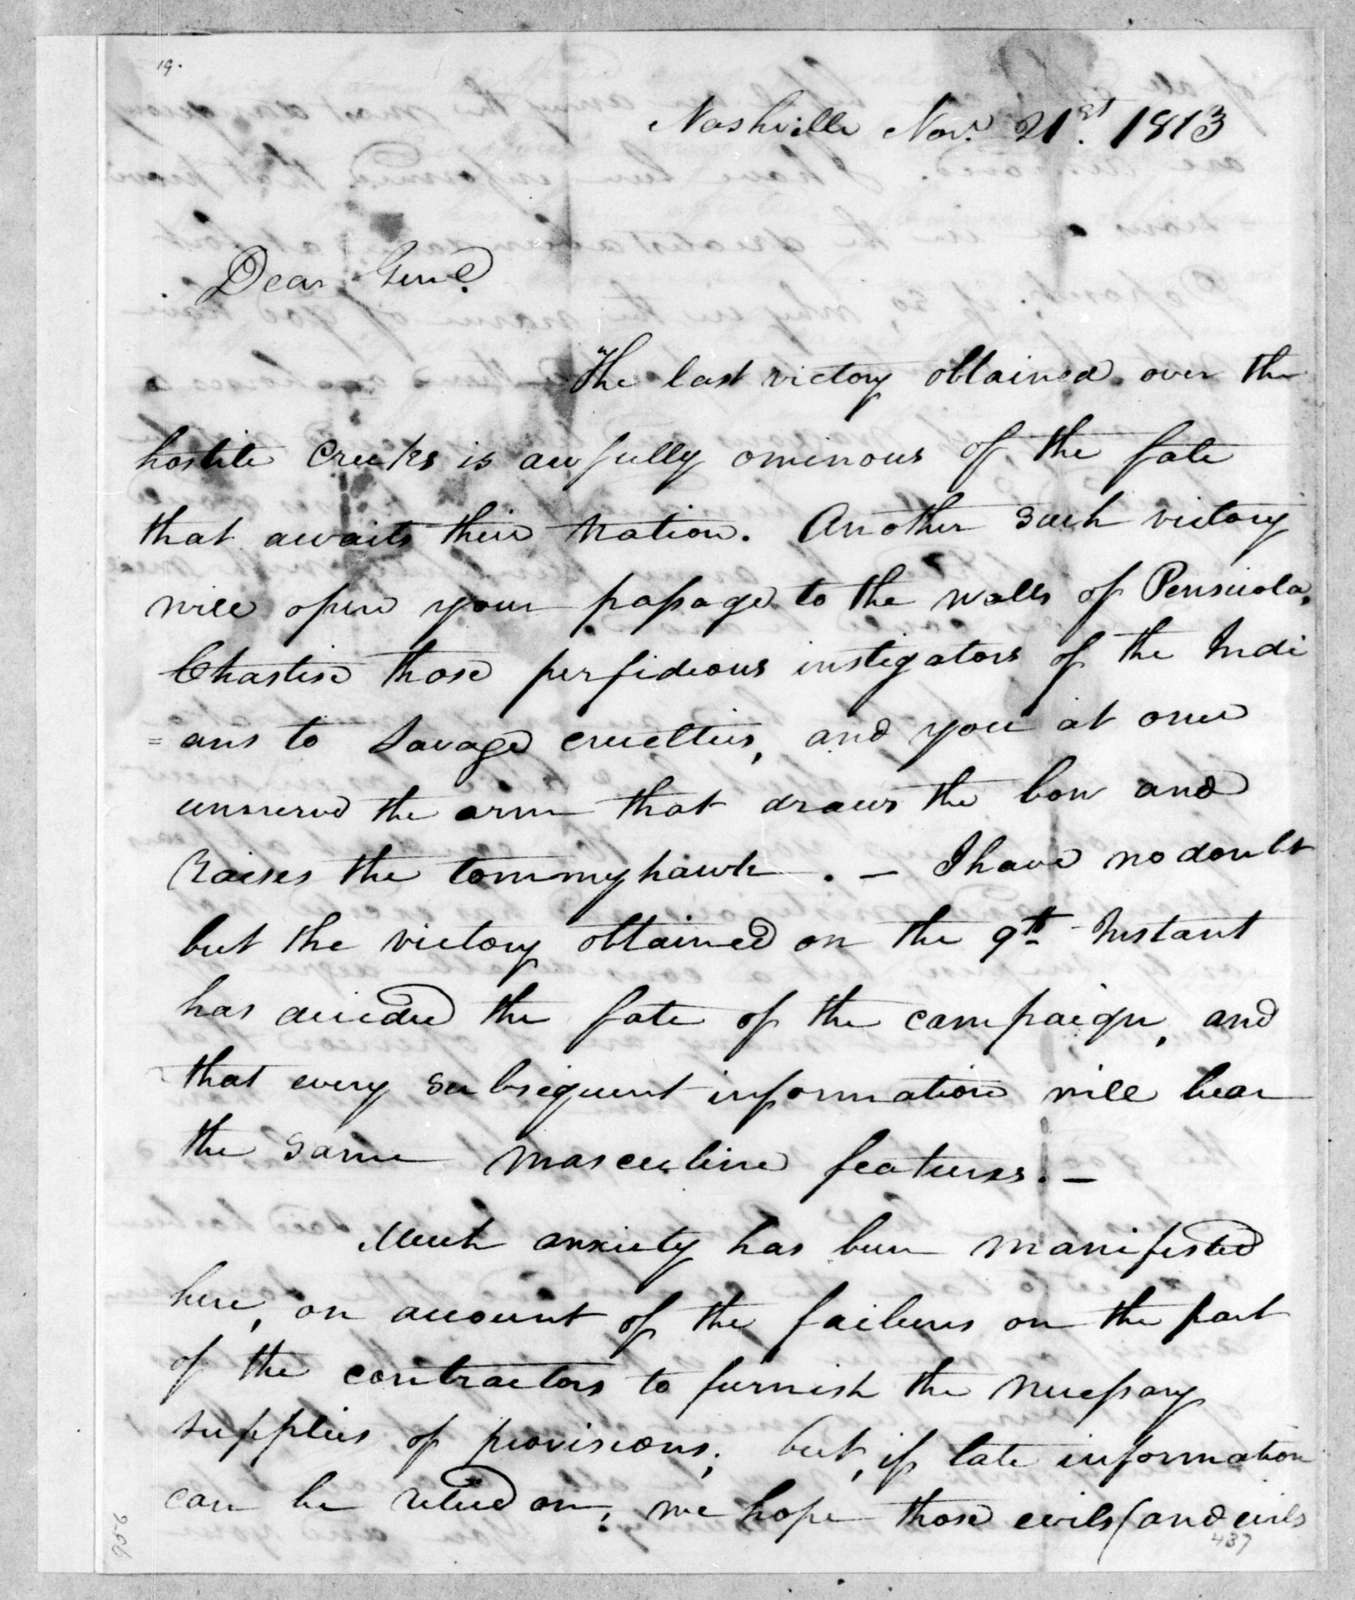 William Berkeley Lewis to Andrew Jackson, November 21, 1813